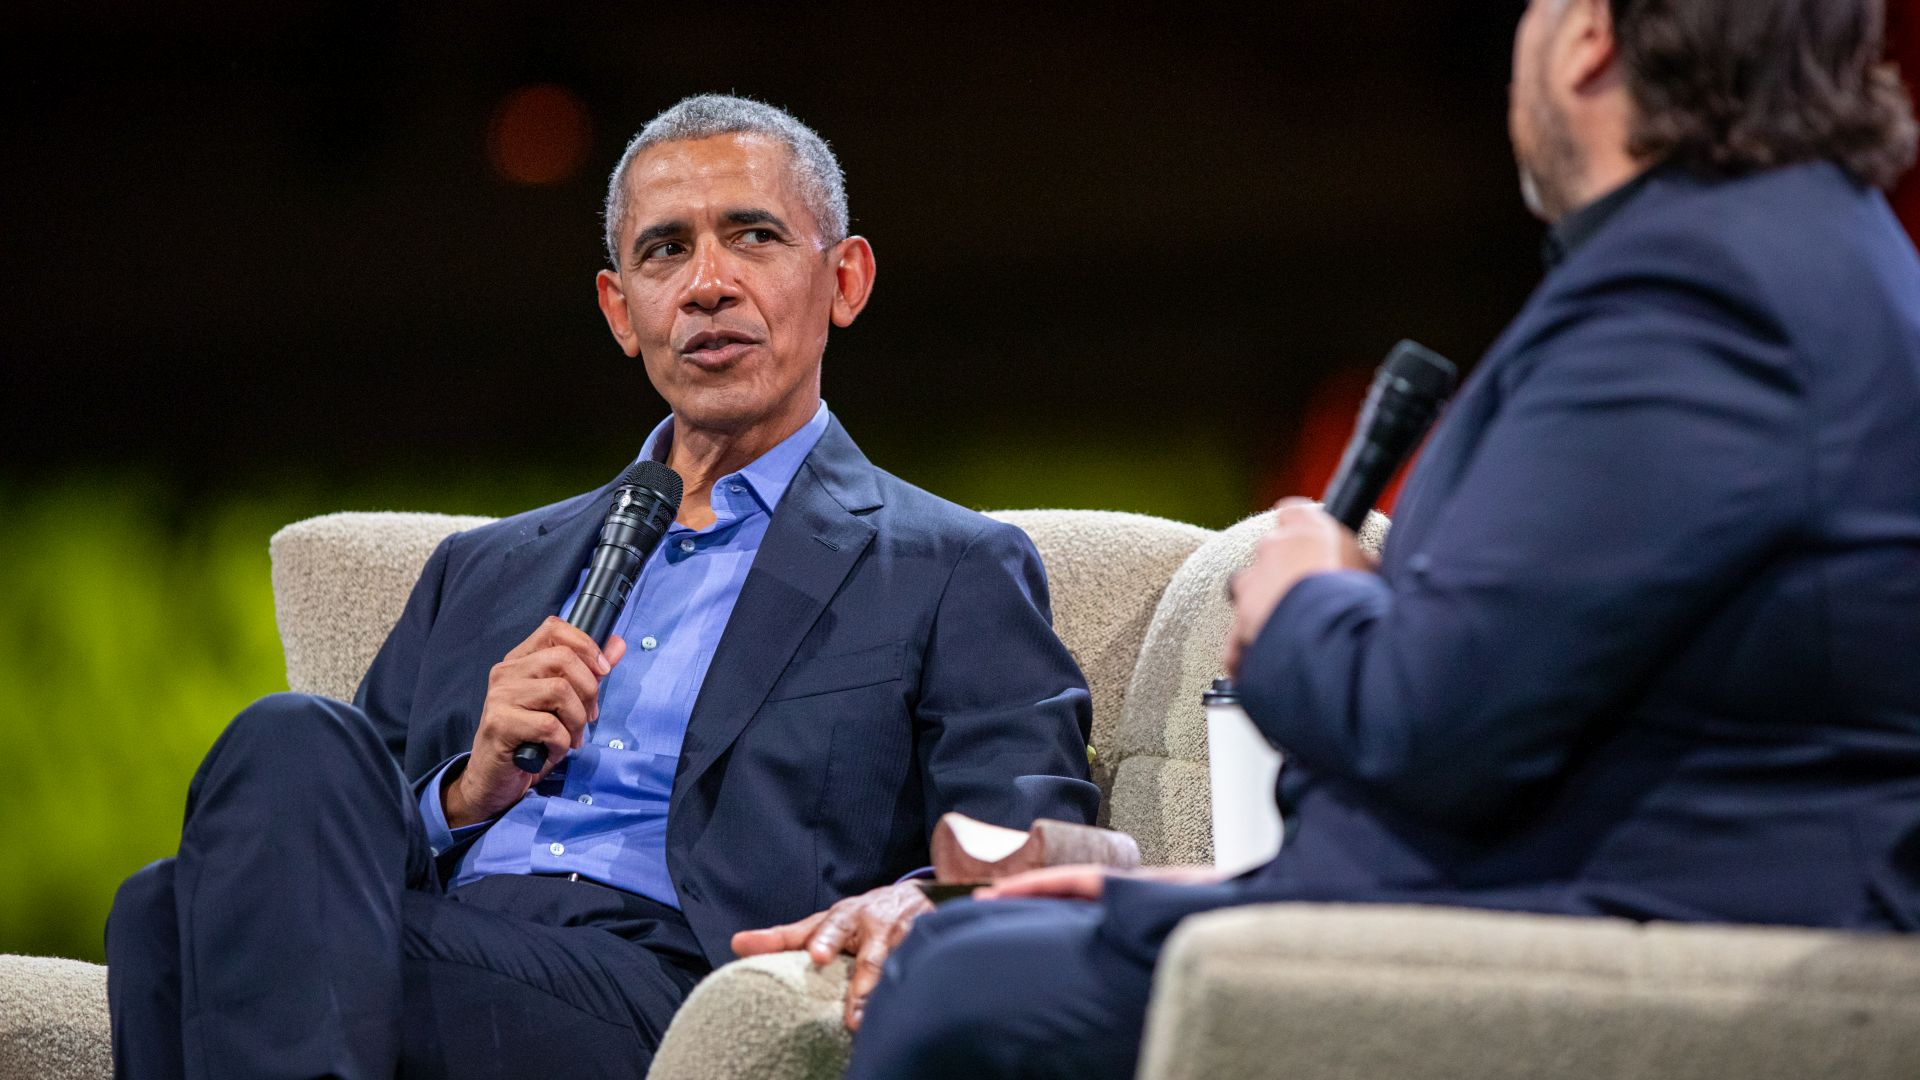 Obama dreamforce